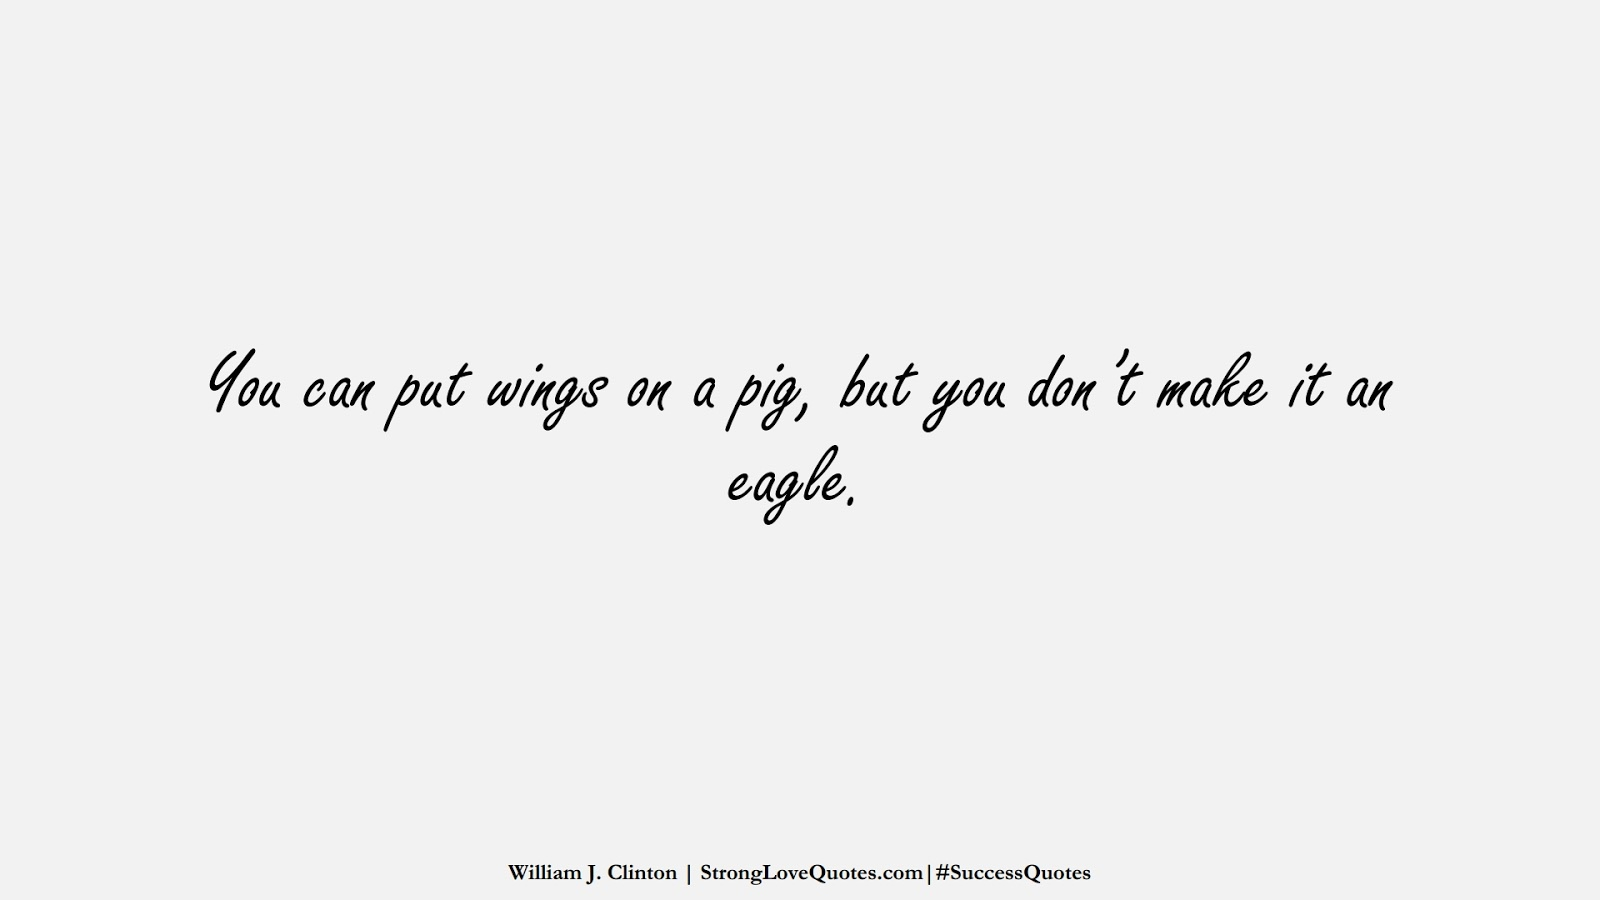 You can put wings on a pig, but you don't make it an eagle. (William J. Clinton);  #SuccessQuotes